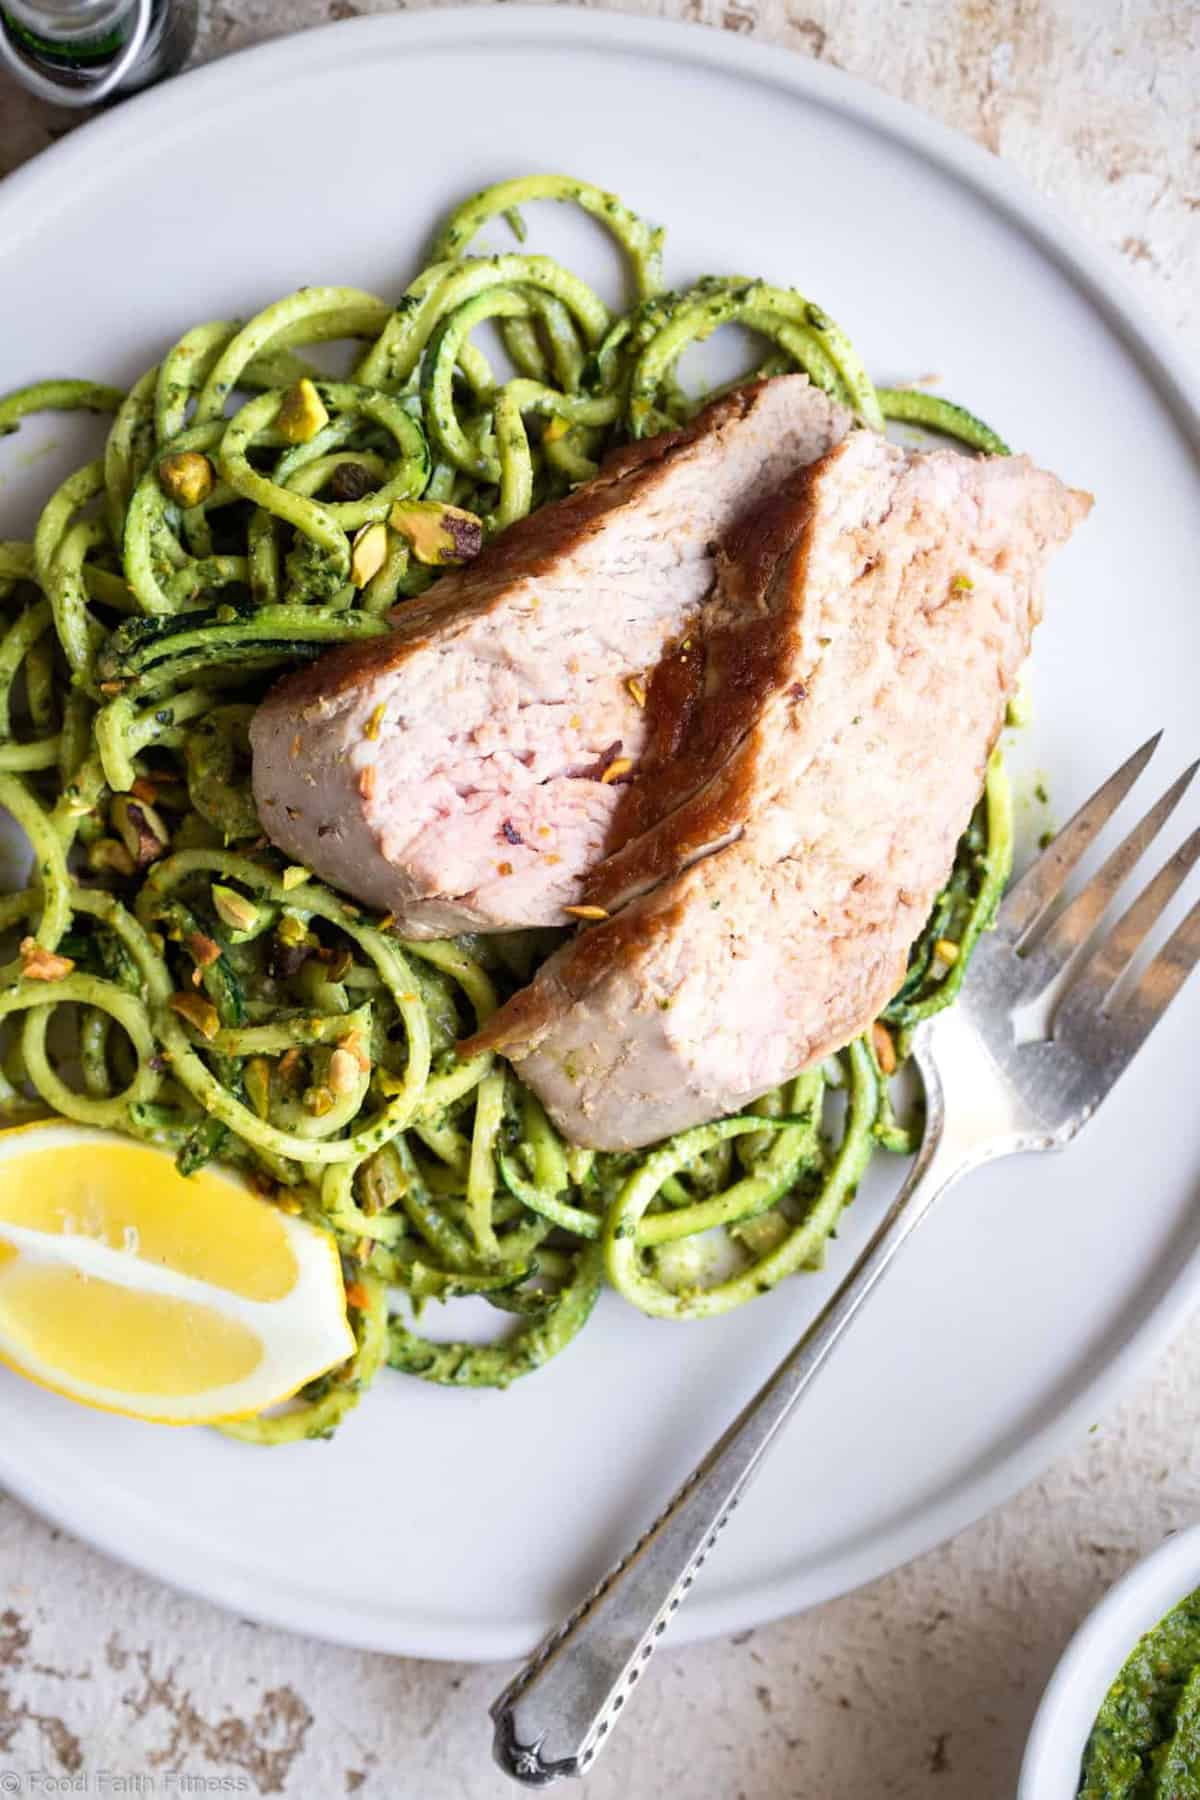 Keto Pork Tenderloin with Pistachio Pesto - This easy, healthy, paleo friendly baked Pork Tenderloin has a delicious, creamy pistachio pesto! A low carb, sugar free weeknight meal that everyone will enjoy! | #Foodfaithfitness | #Glutenfree #Keto #Lowcarb #Paleo #Sugarfree